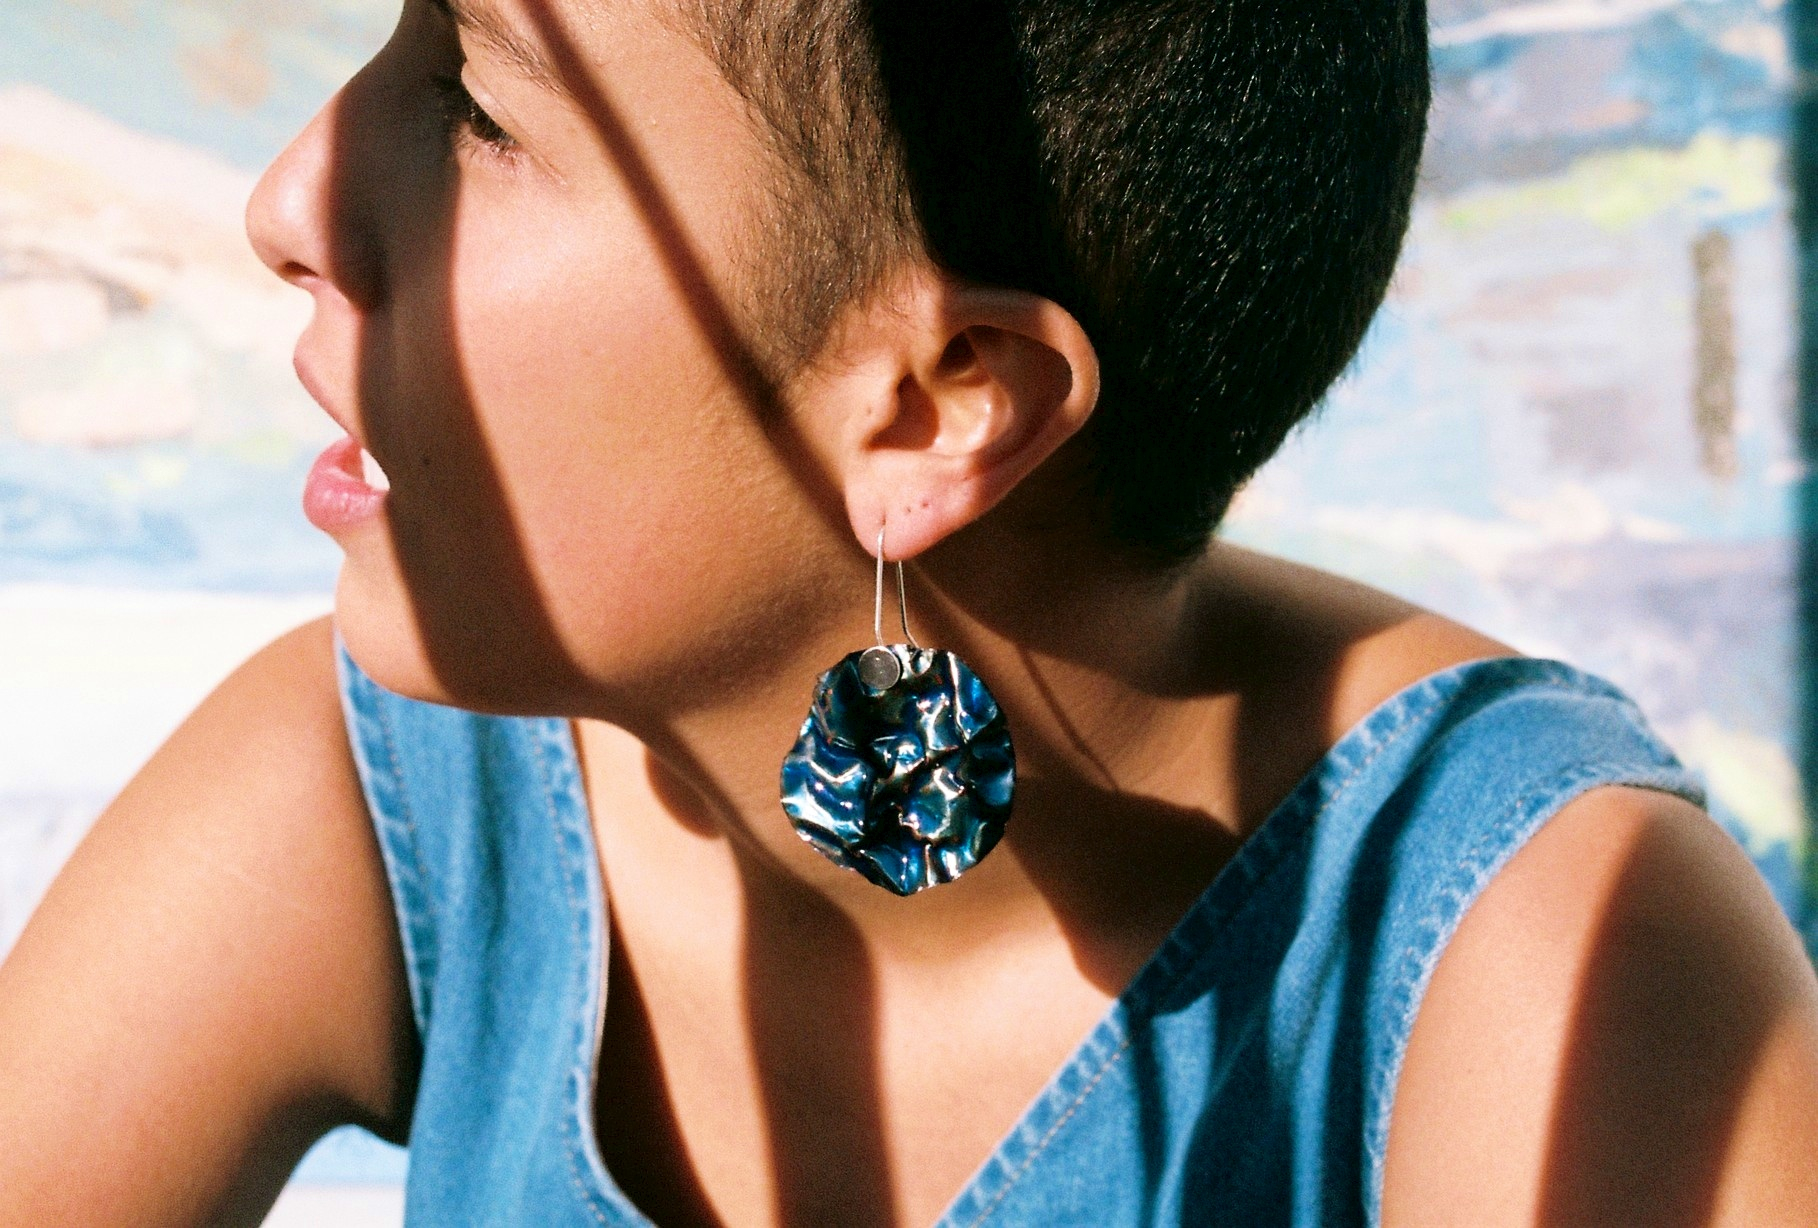 Oil slick earrings. Statement earrings made from sterling silver and enamel. Handcrafted by contemporary jeweller, Ada Hodgson in her Melbourne based workshop.